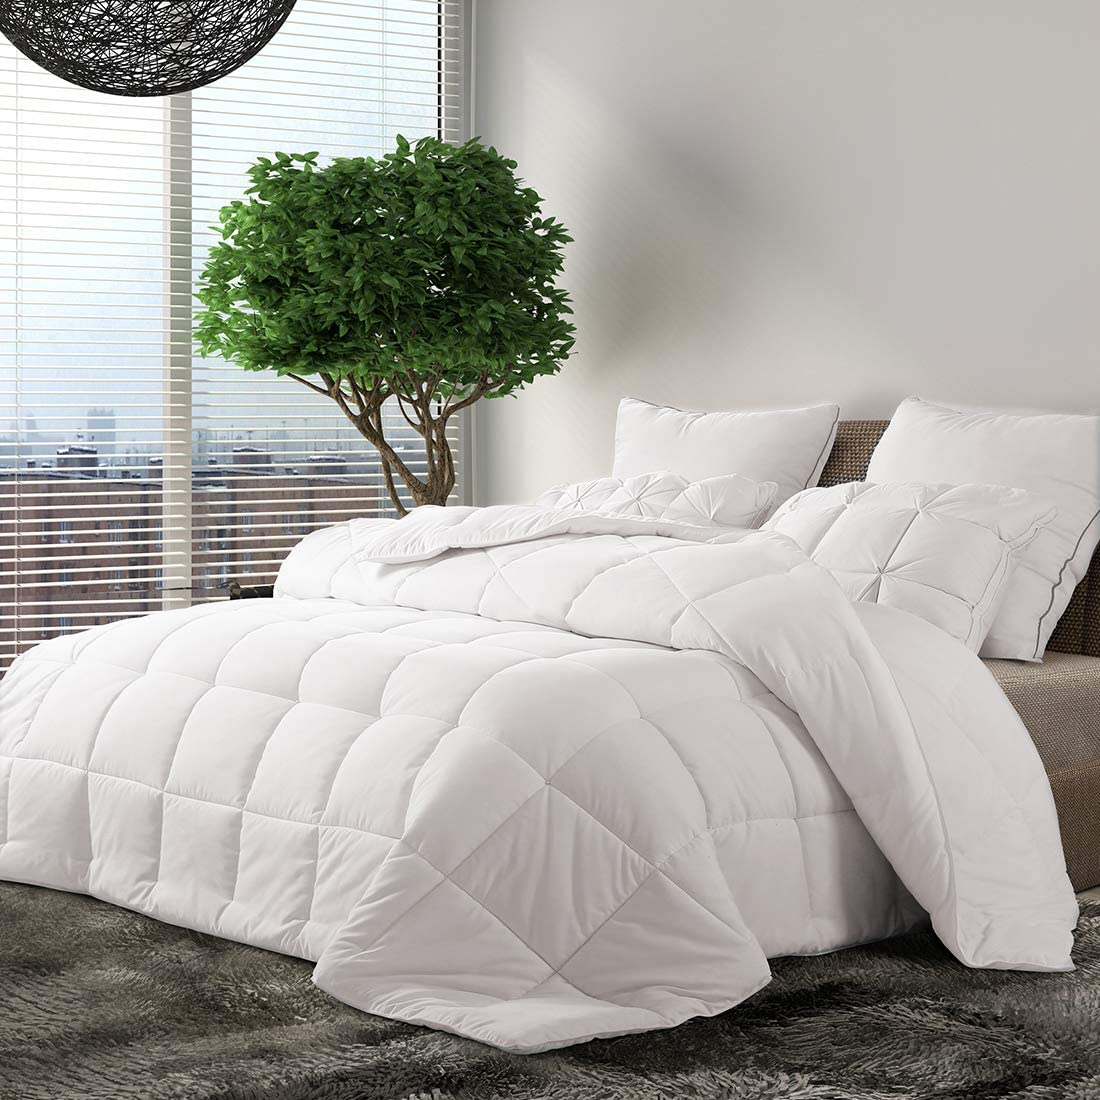 "INGALIK Down Alternative King Bed Comforter,Summer Cool,Fluffy,Ultra Soft Quilted Duvet Insert with Corner Tabs,Lightweight,Machine Washable,All-Season,Hypoallergenic,White (King,102""x90"")"